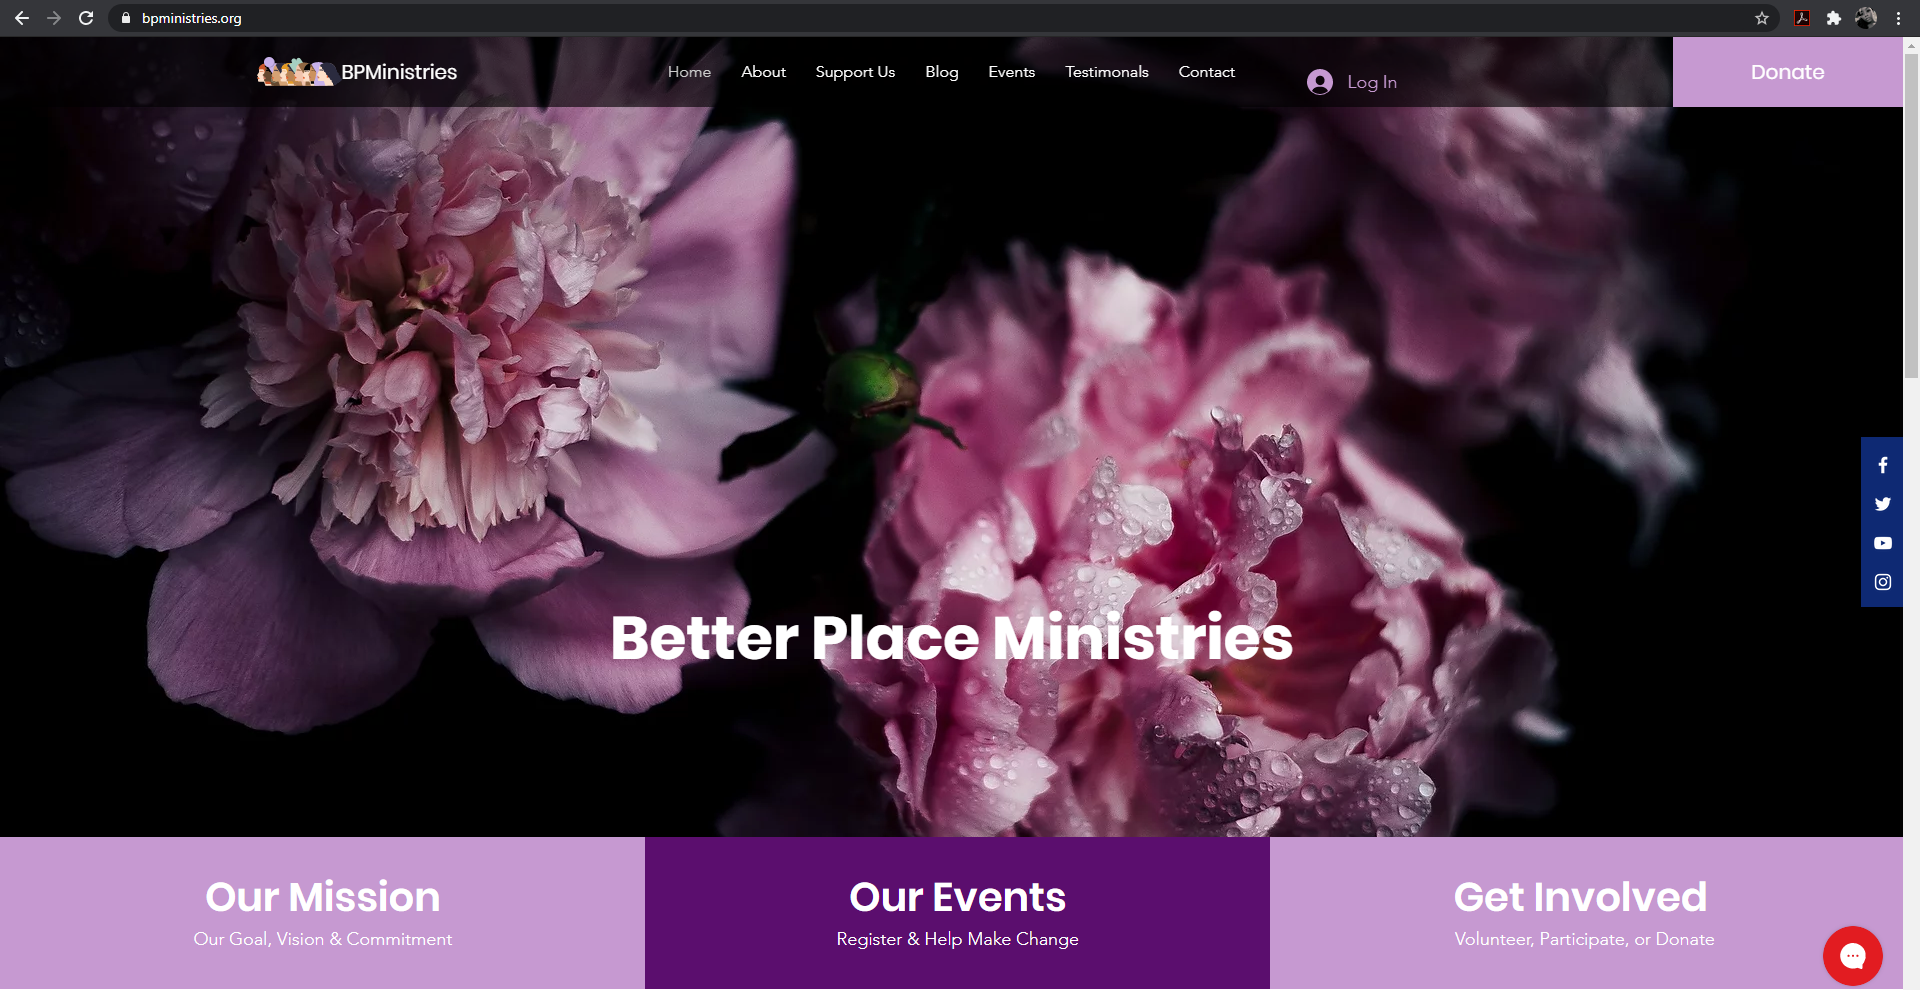 Better Place Ministries